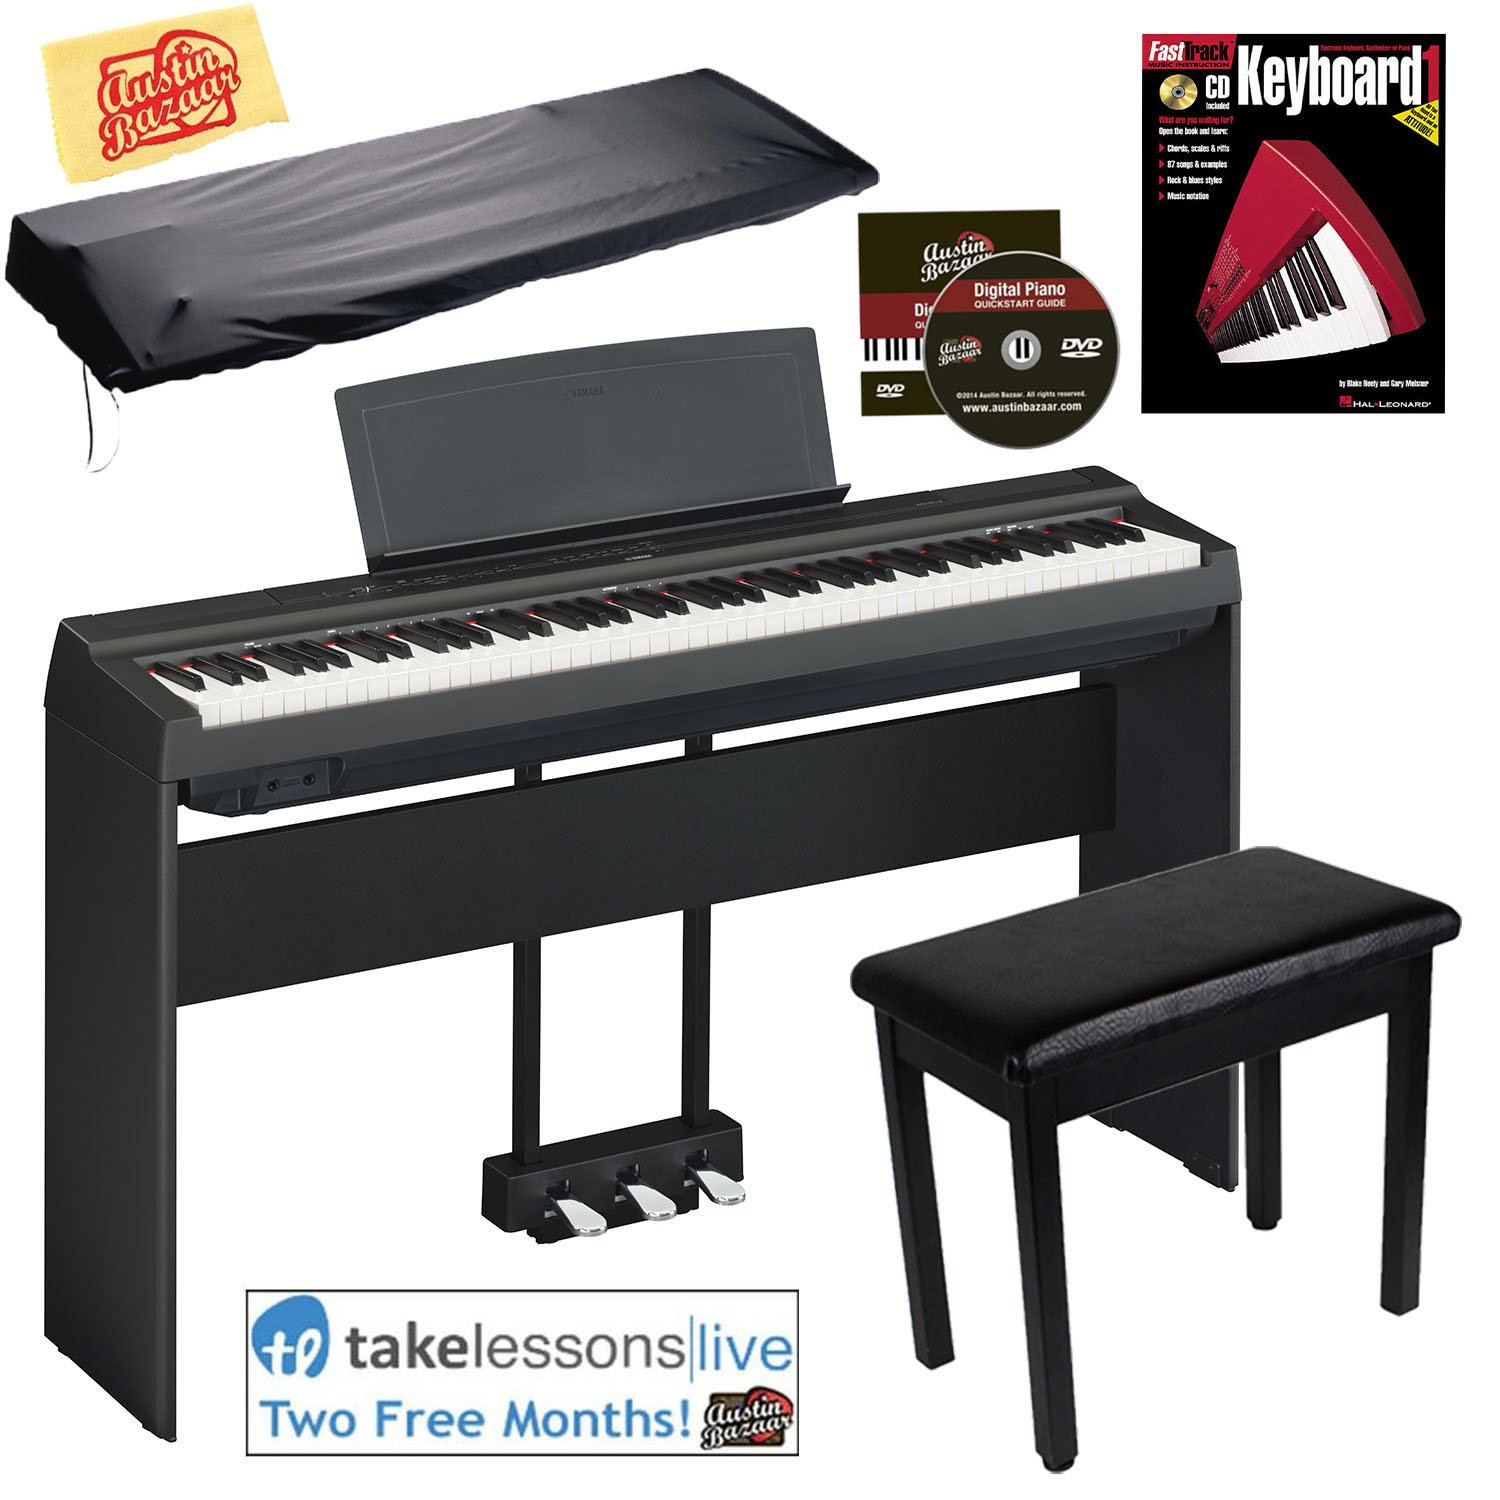 Yamaha P-125 Digital Piano - Black Bundle with Yamaha L-125 Stand, LP-1 Pedal, Furniture Bench, Dust Cover, Instructional Book, Online Lessons, Austin Bazaar Instructional DVD, and Polishing Cloth by Yamaha